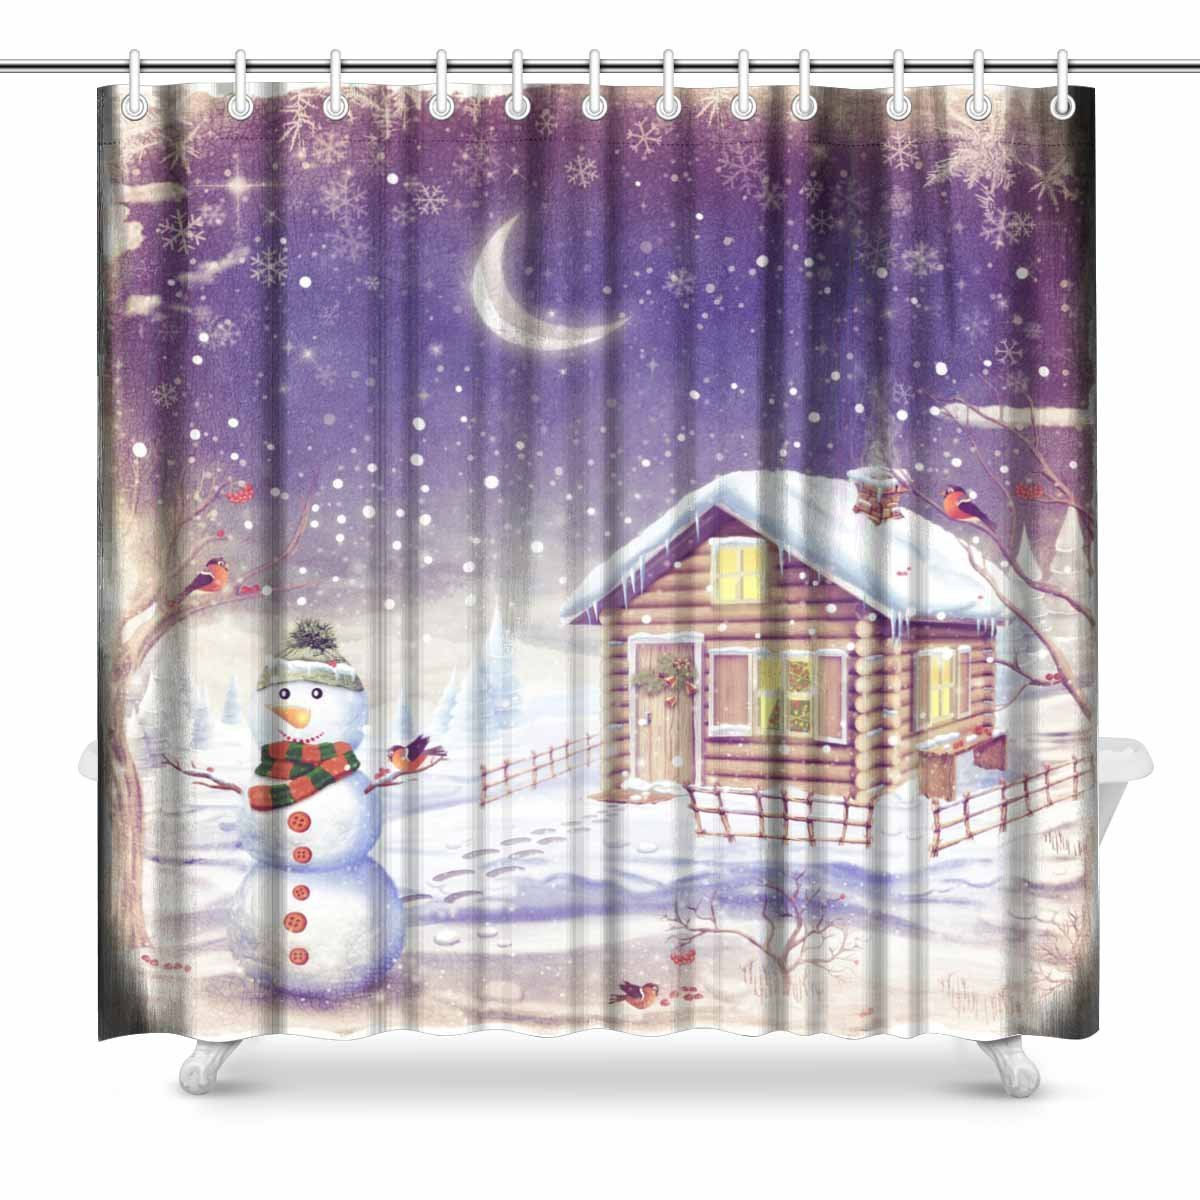 Us 11 4 62 Off Aplysia Winter Landscape With Snowman Christmas Scene With Snowman And House Fabric Shower Curtain Decor With Hooks In Shower